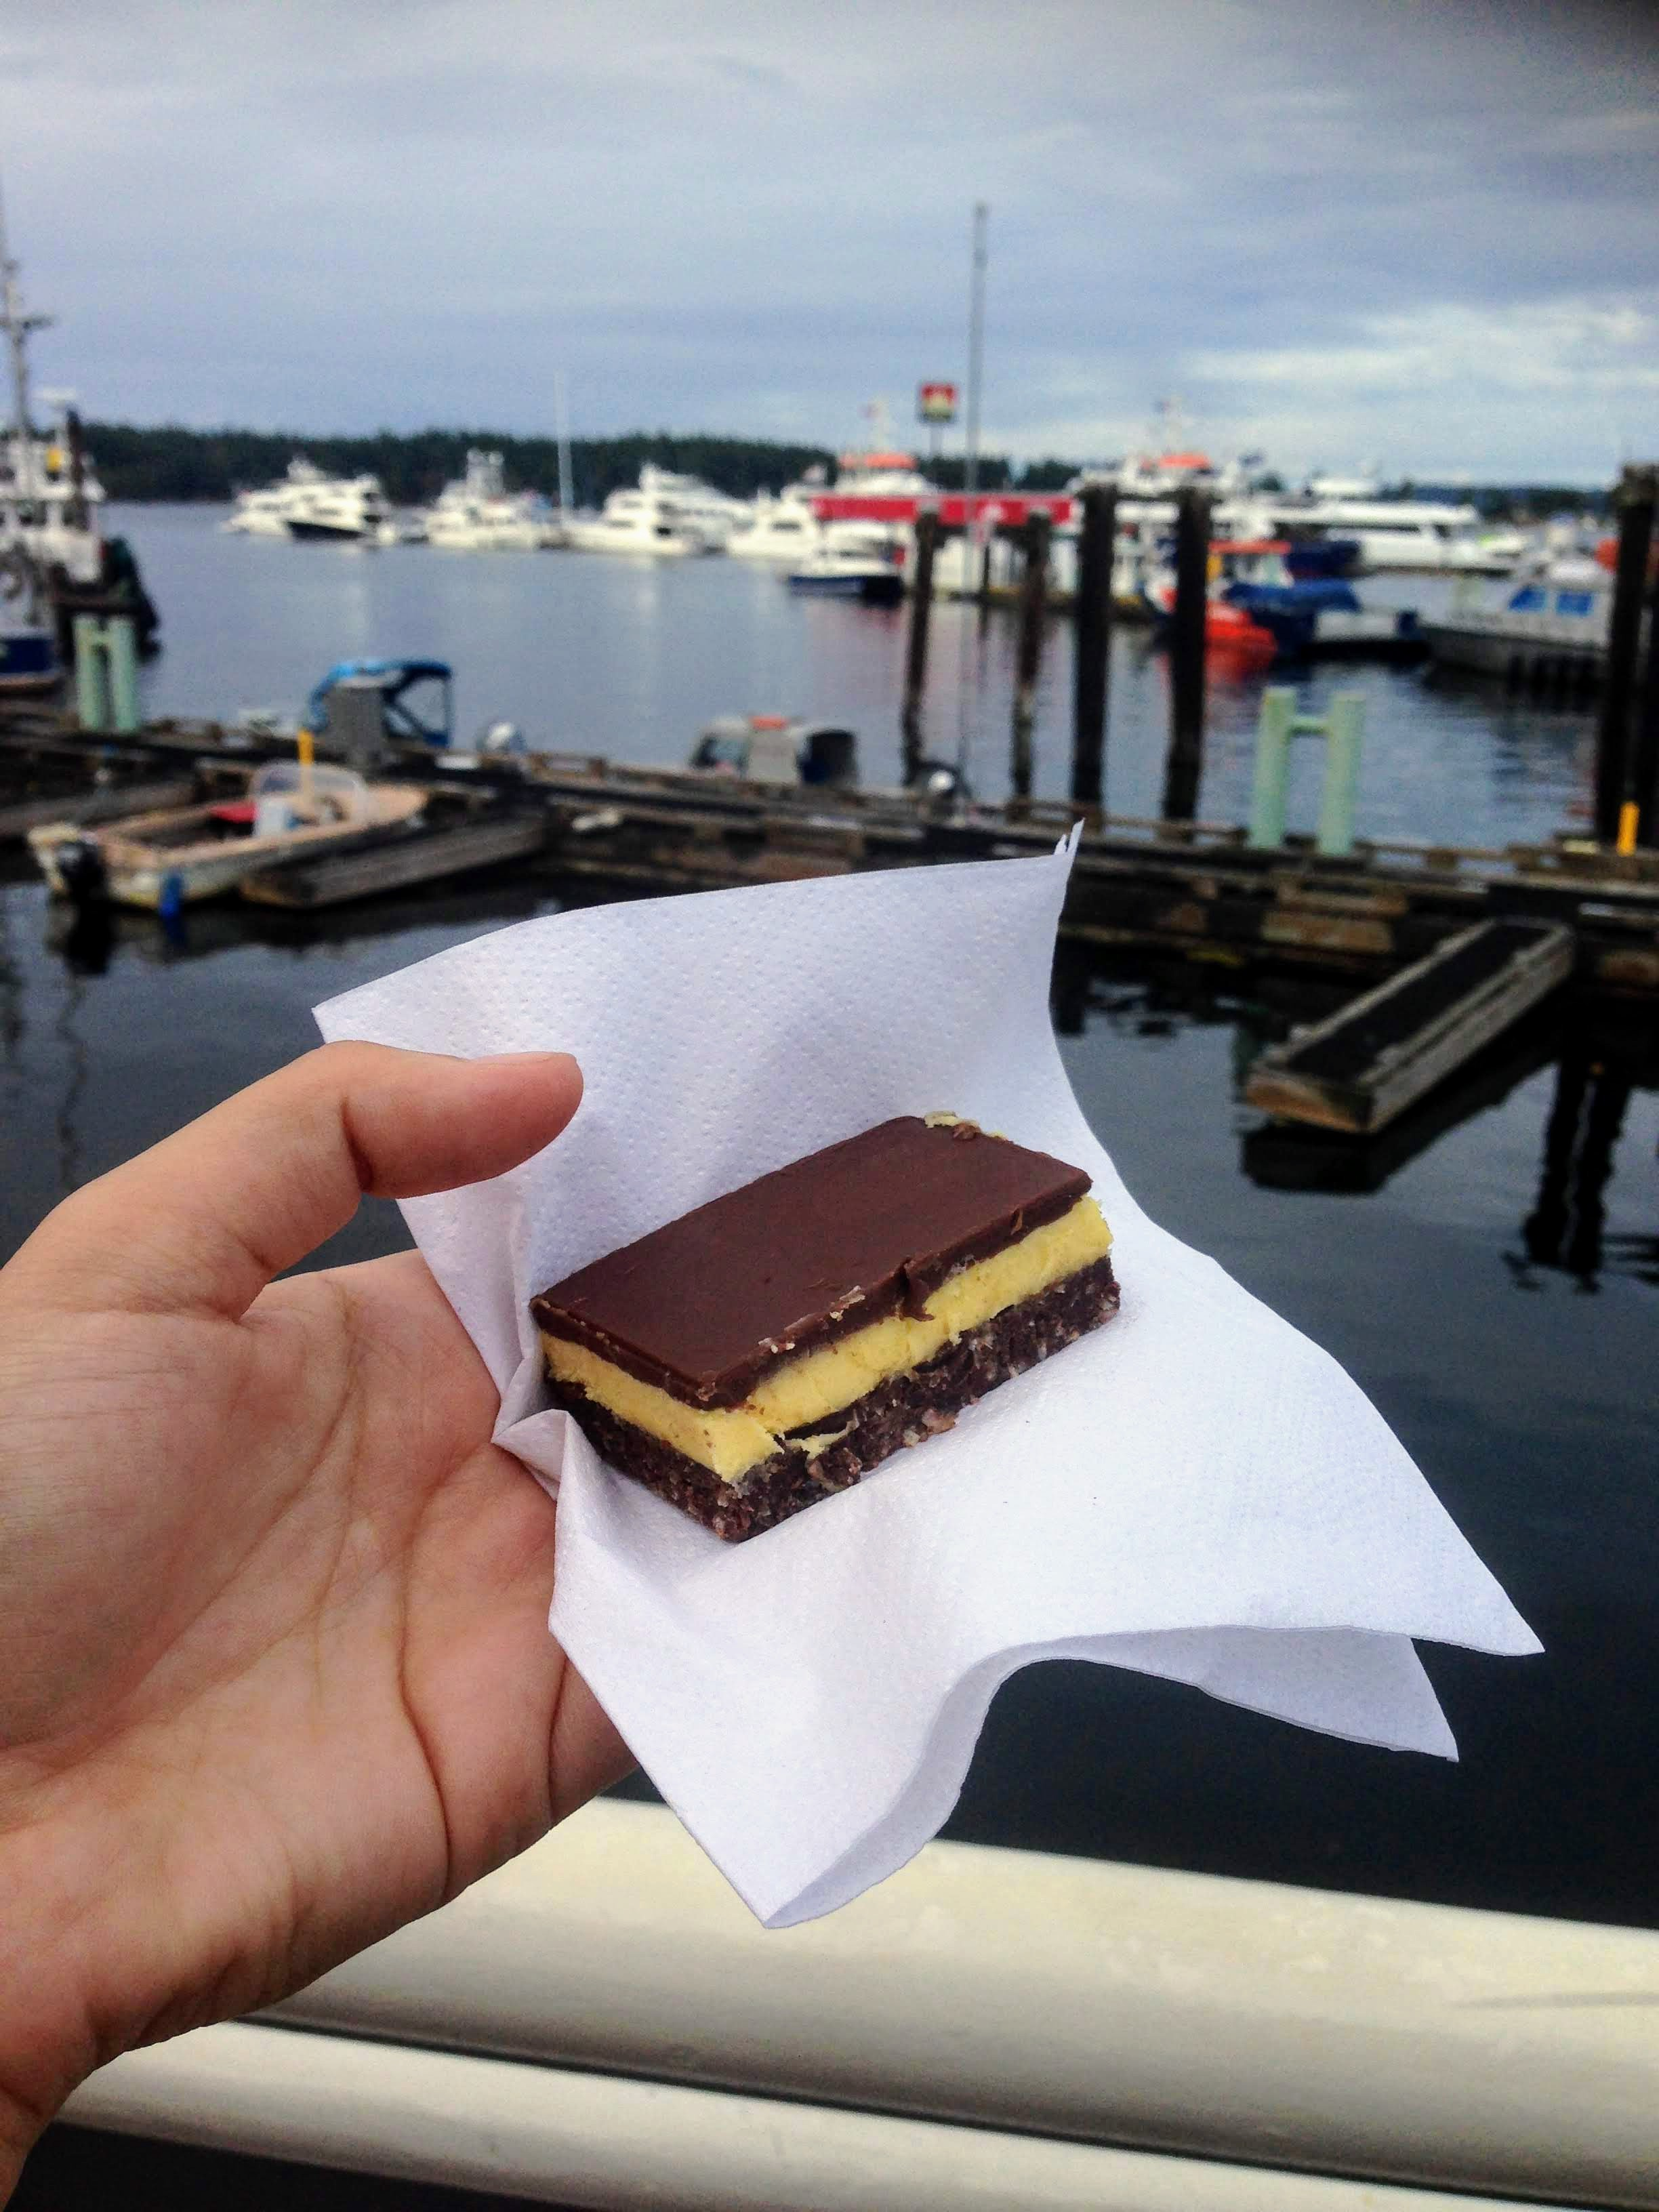 Canada Vancouver Island Nanaimo food tips cuisine travel tips food guide travel blog nanaimo bars